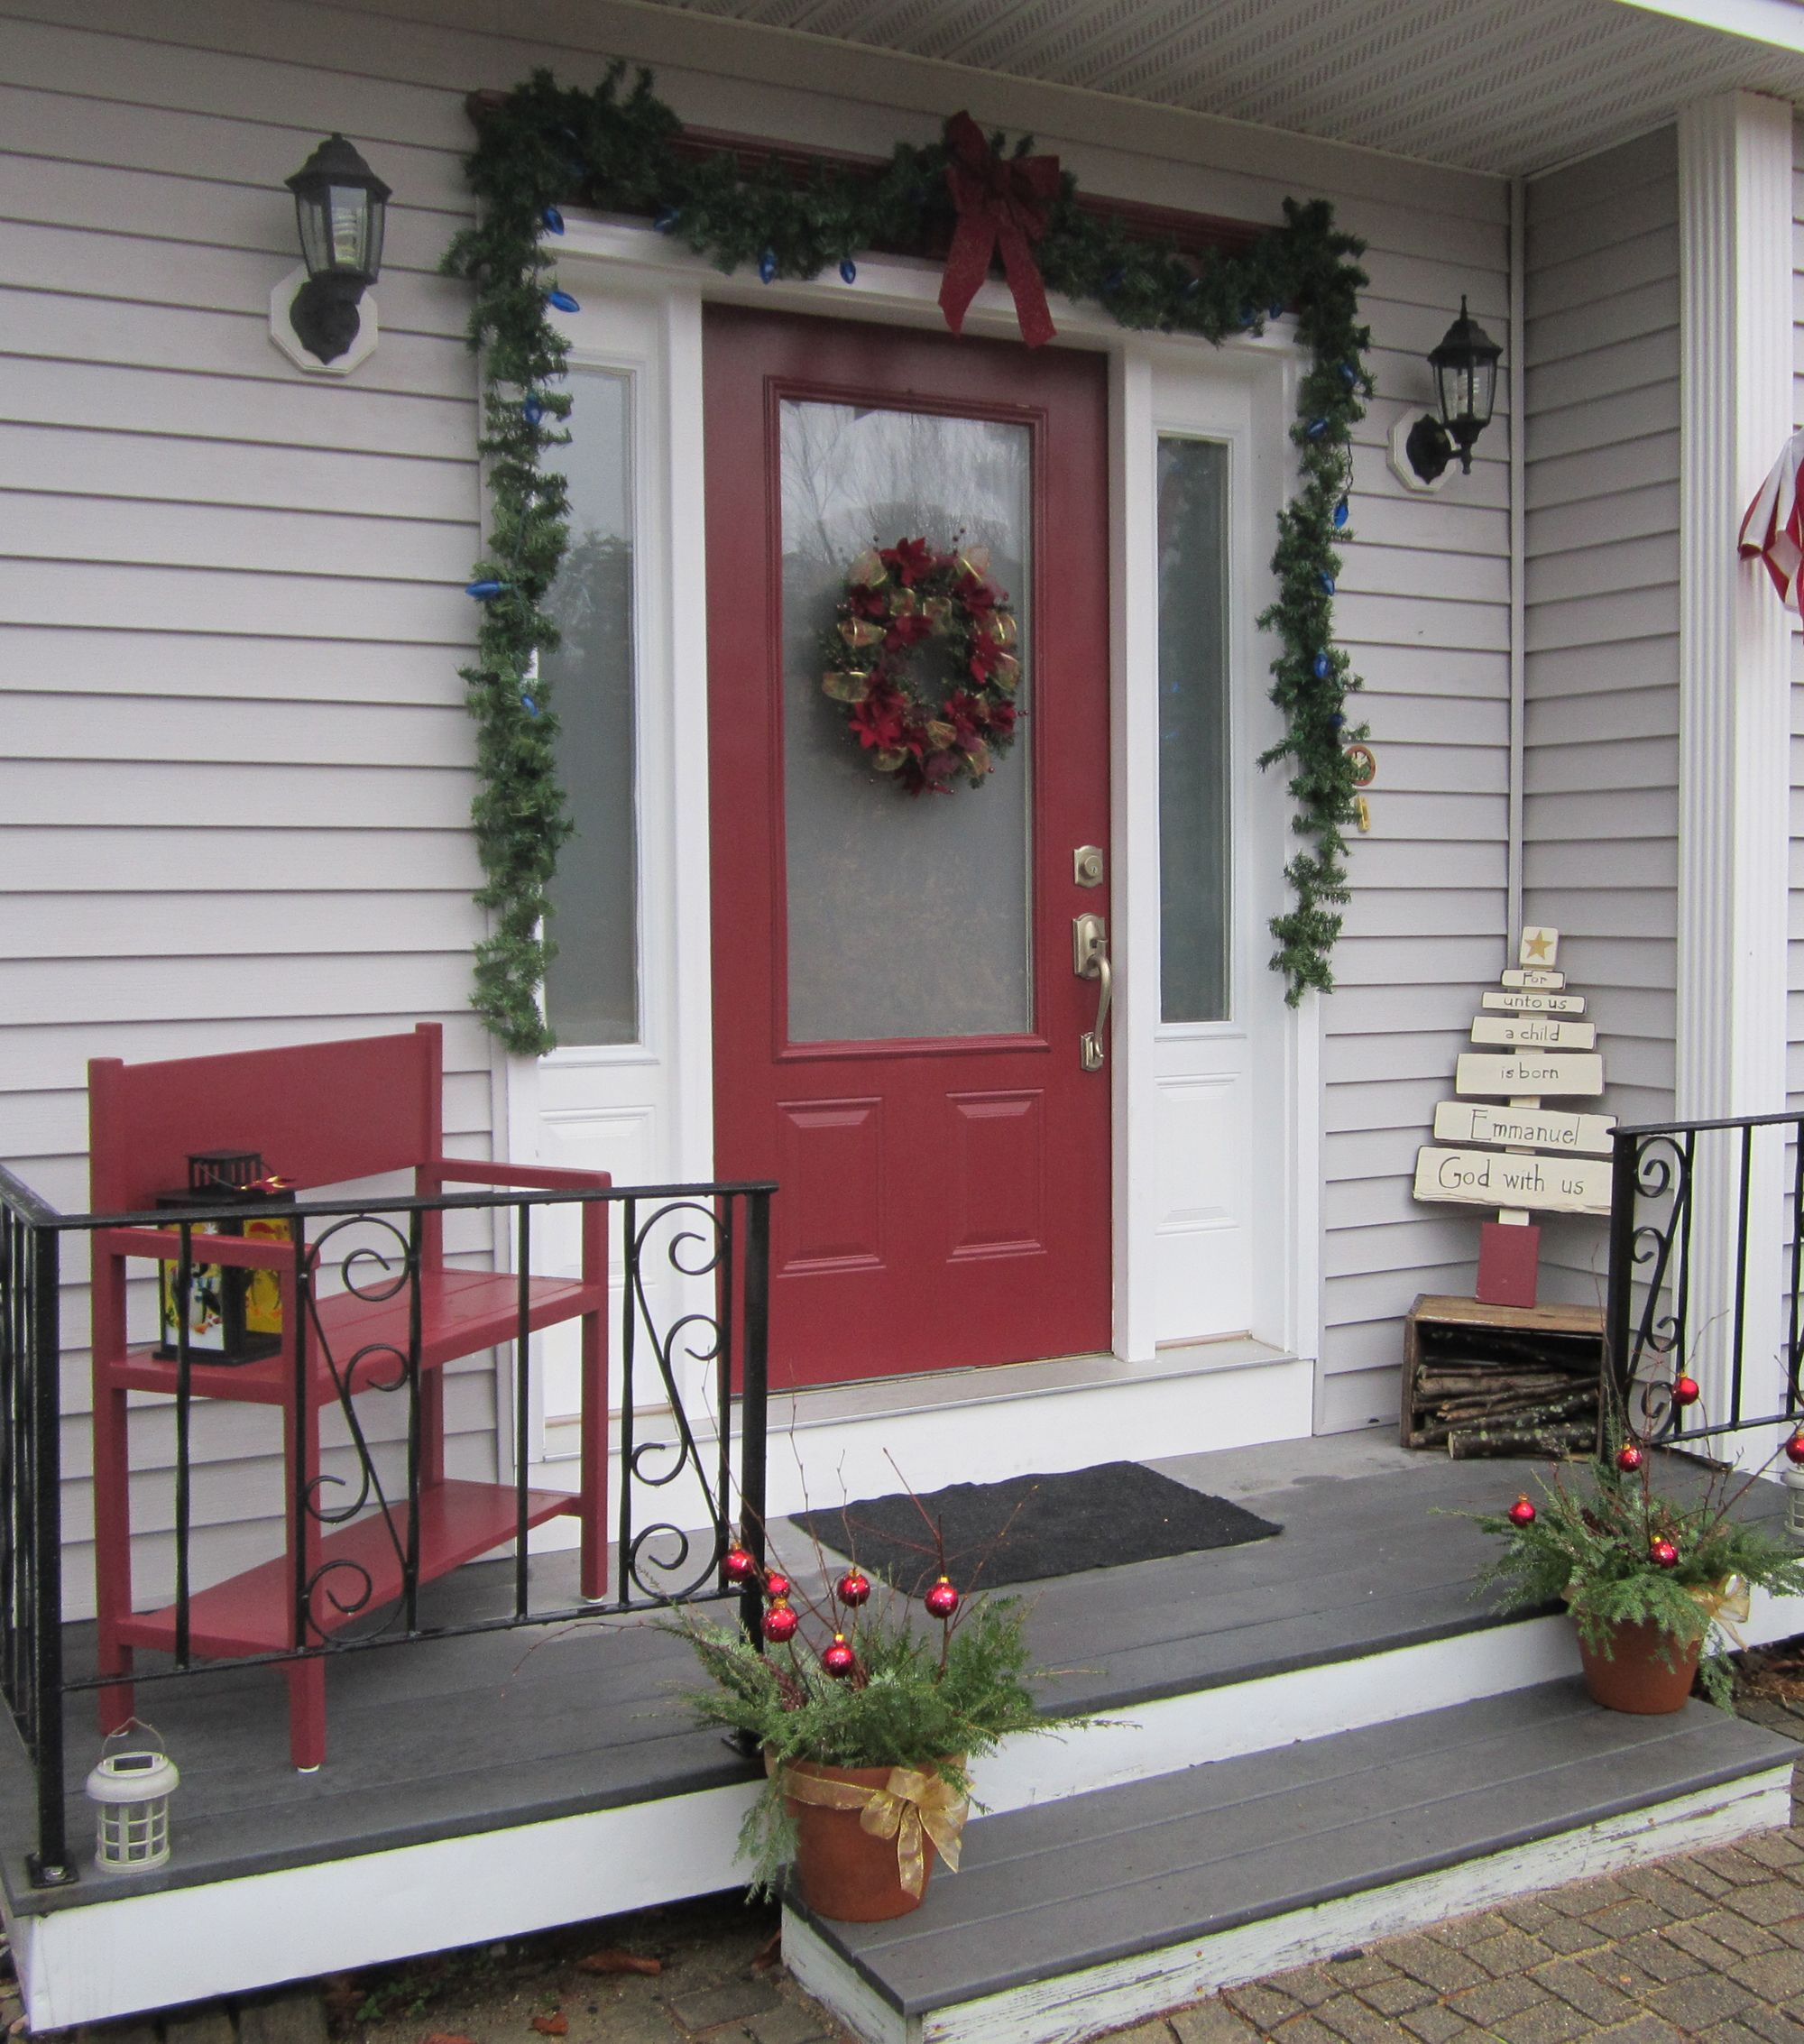 Christmas decoration ideas for a small house - Cheap Front Porch Decorating Ideas Fashionable Christmas Decor For Front Porch Picture 503